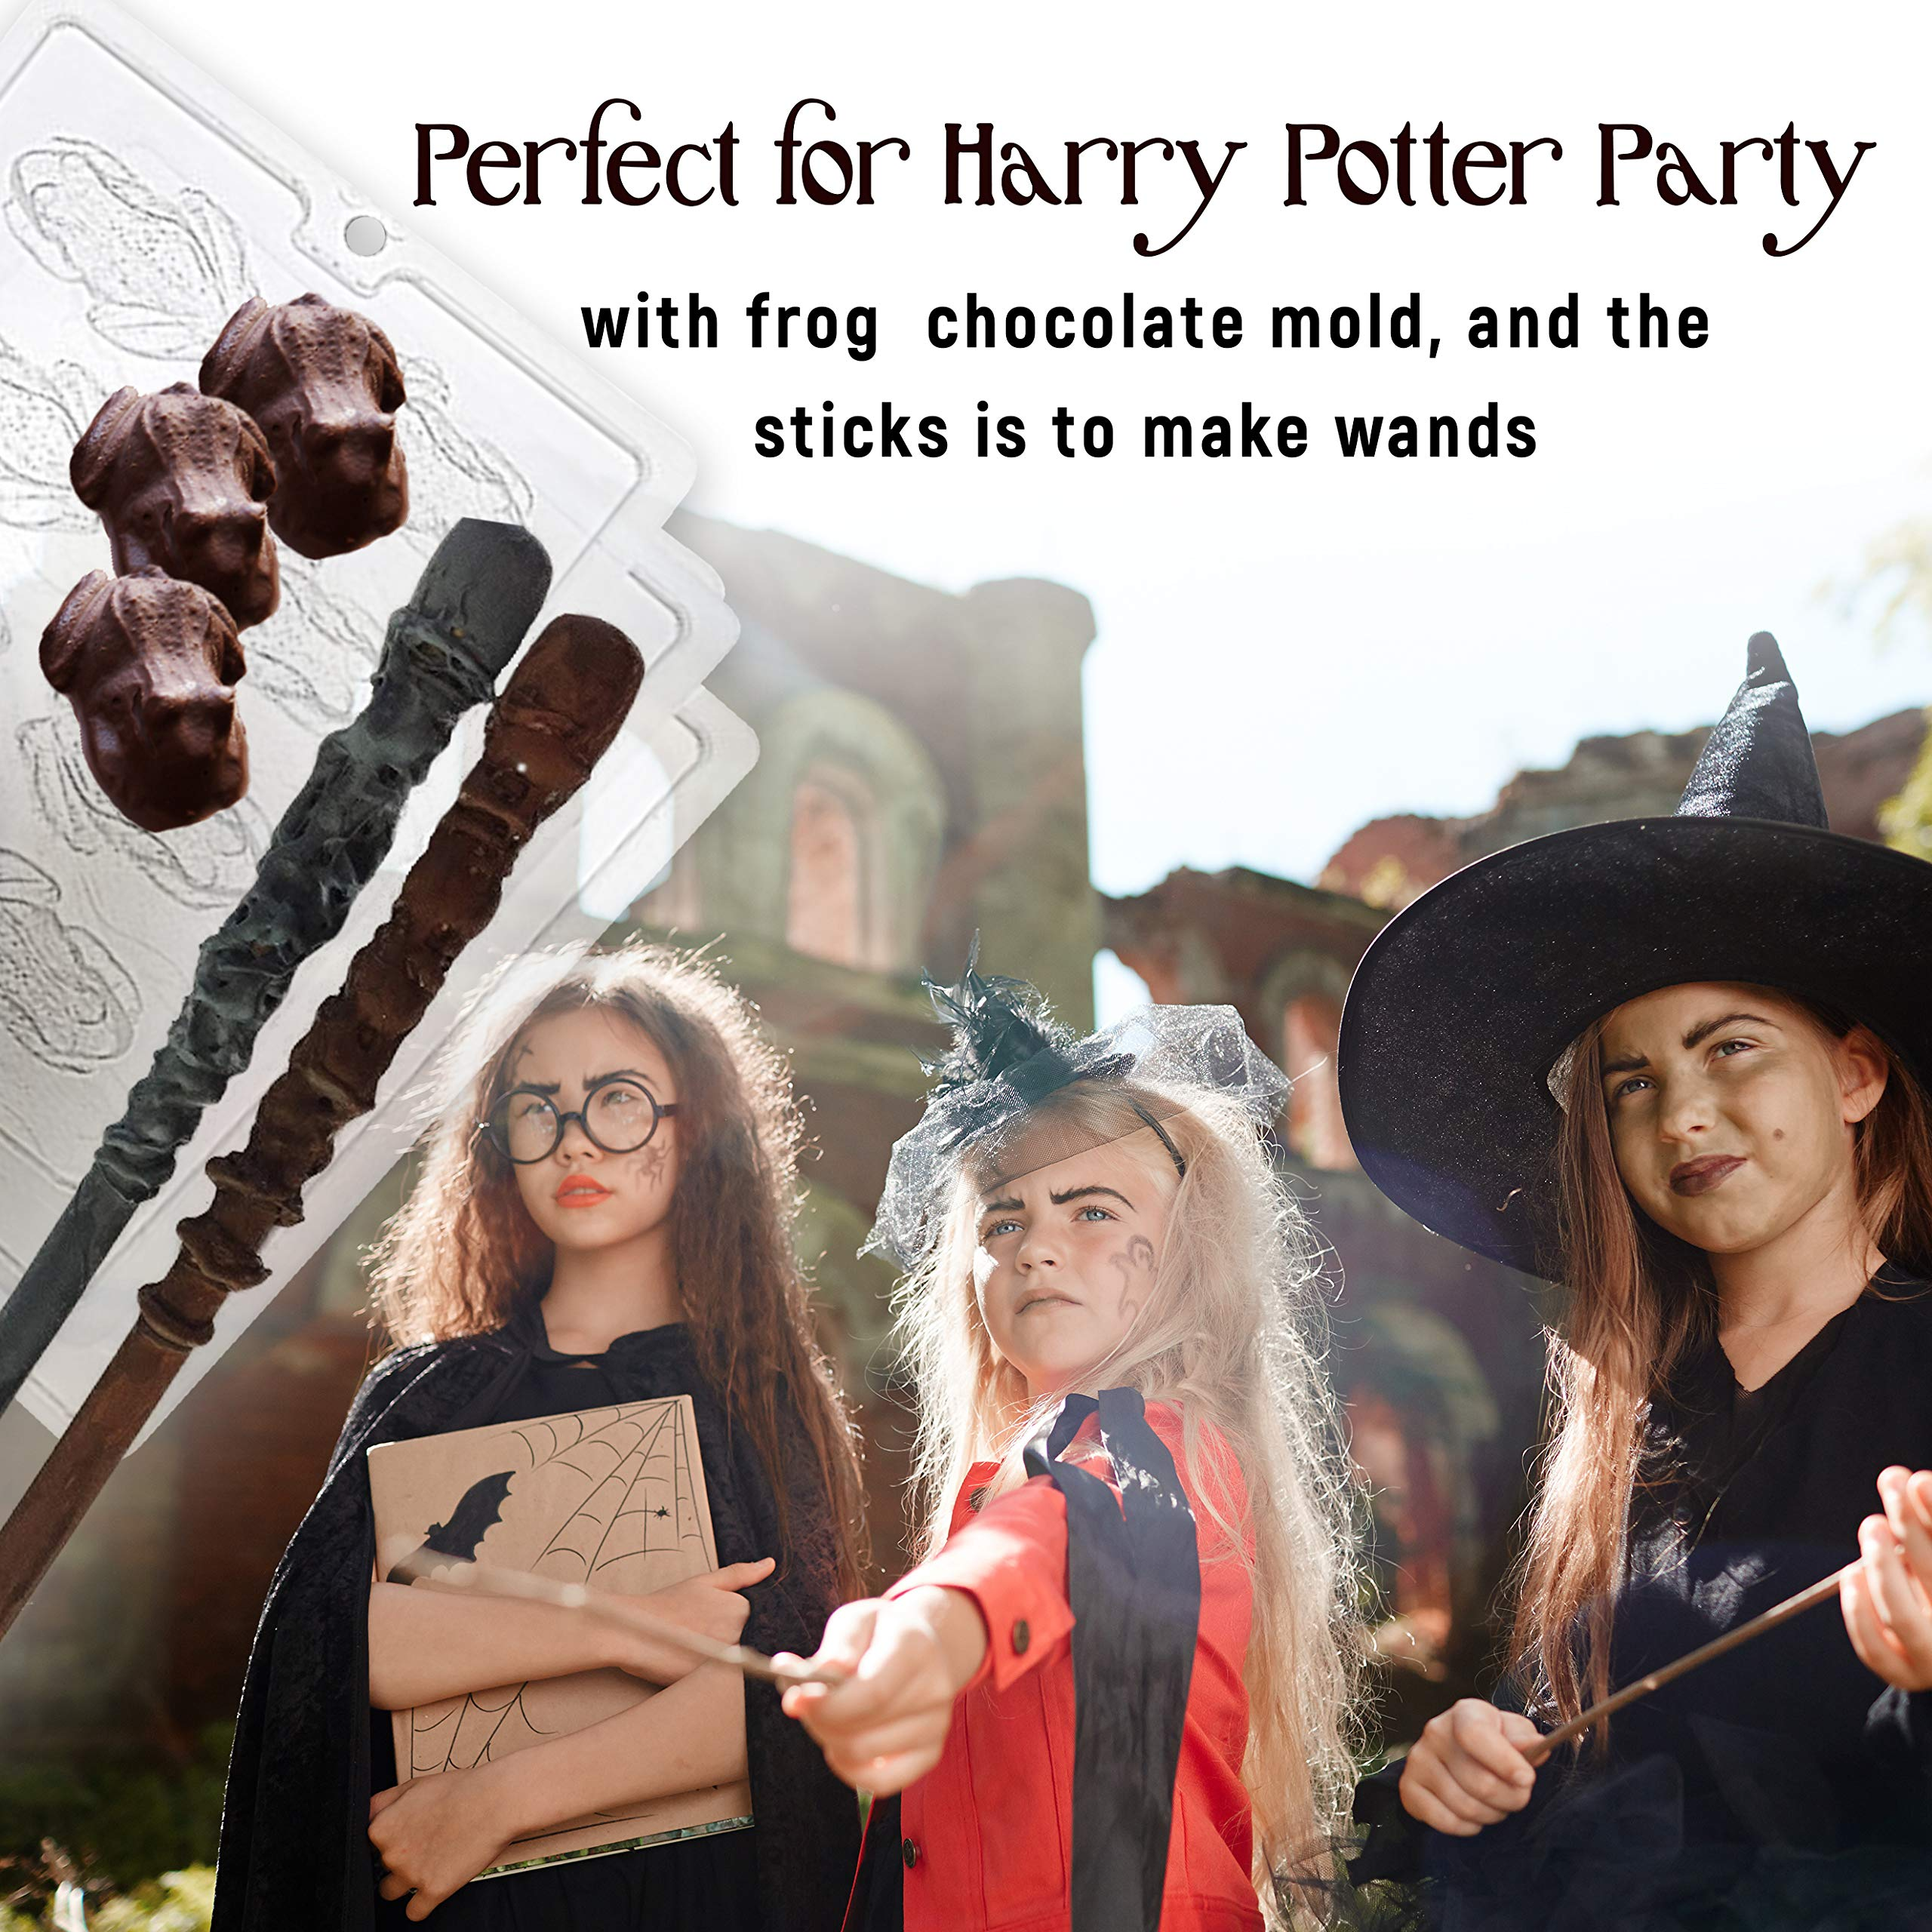 Candy Chocolate Frog Mold And Magic Wizard Wand Making - 3 Frog Mold With 8 Cavities Each, With 15, 9'' Bamboo Chopsticks - Perfect For DIY Crafts Wizard Wand. by kedudes